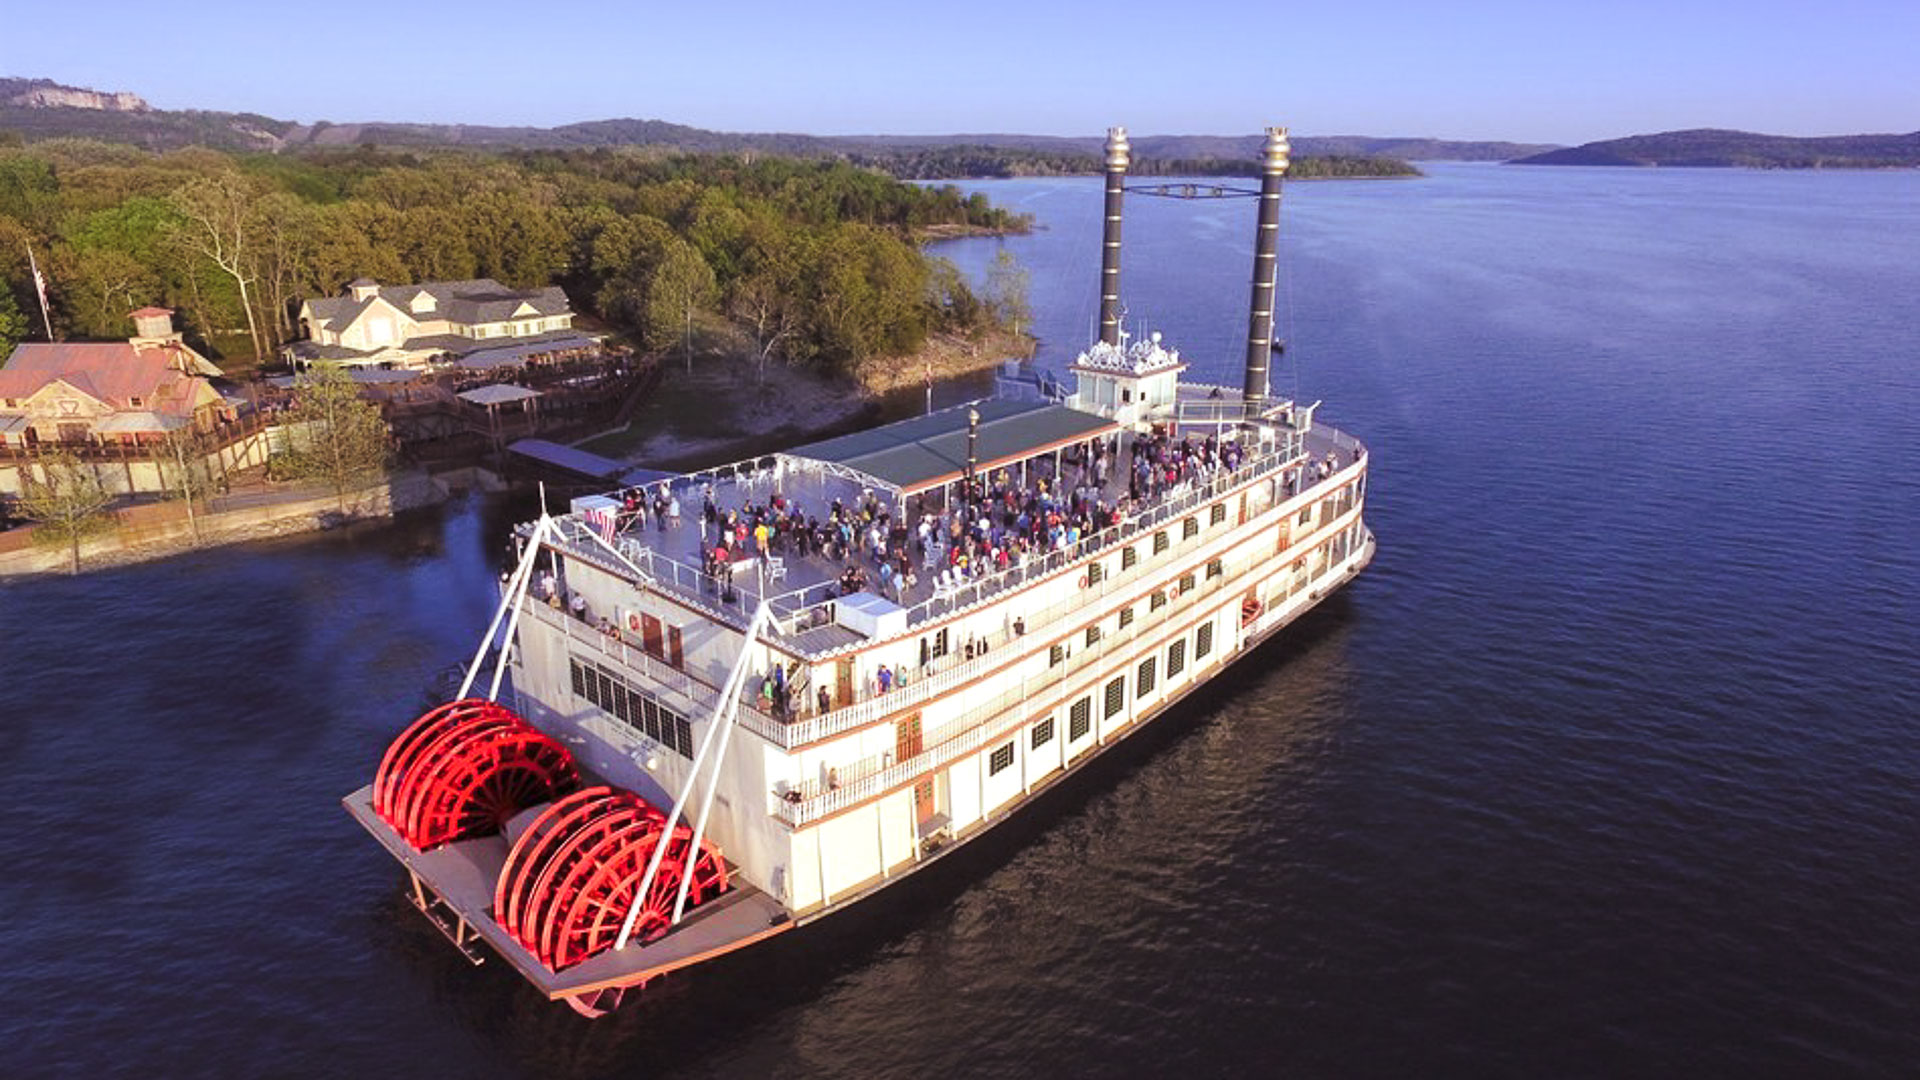 190303 2019 Showboat Branson LandingBelle NOP - Showboat Branson Belle Ready to Cruise into 2019 Season